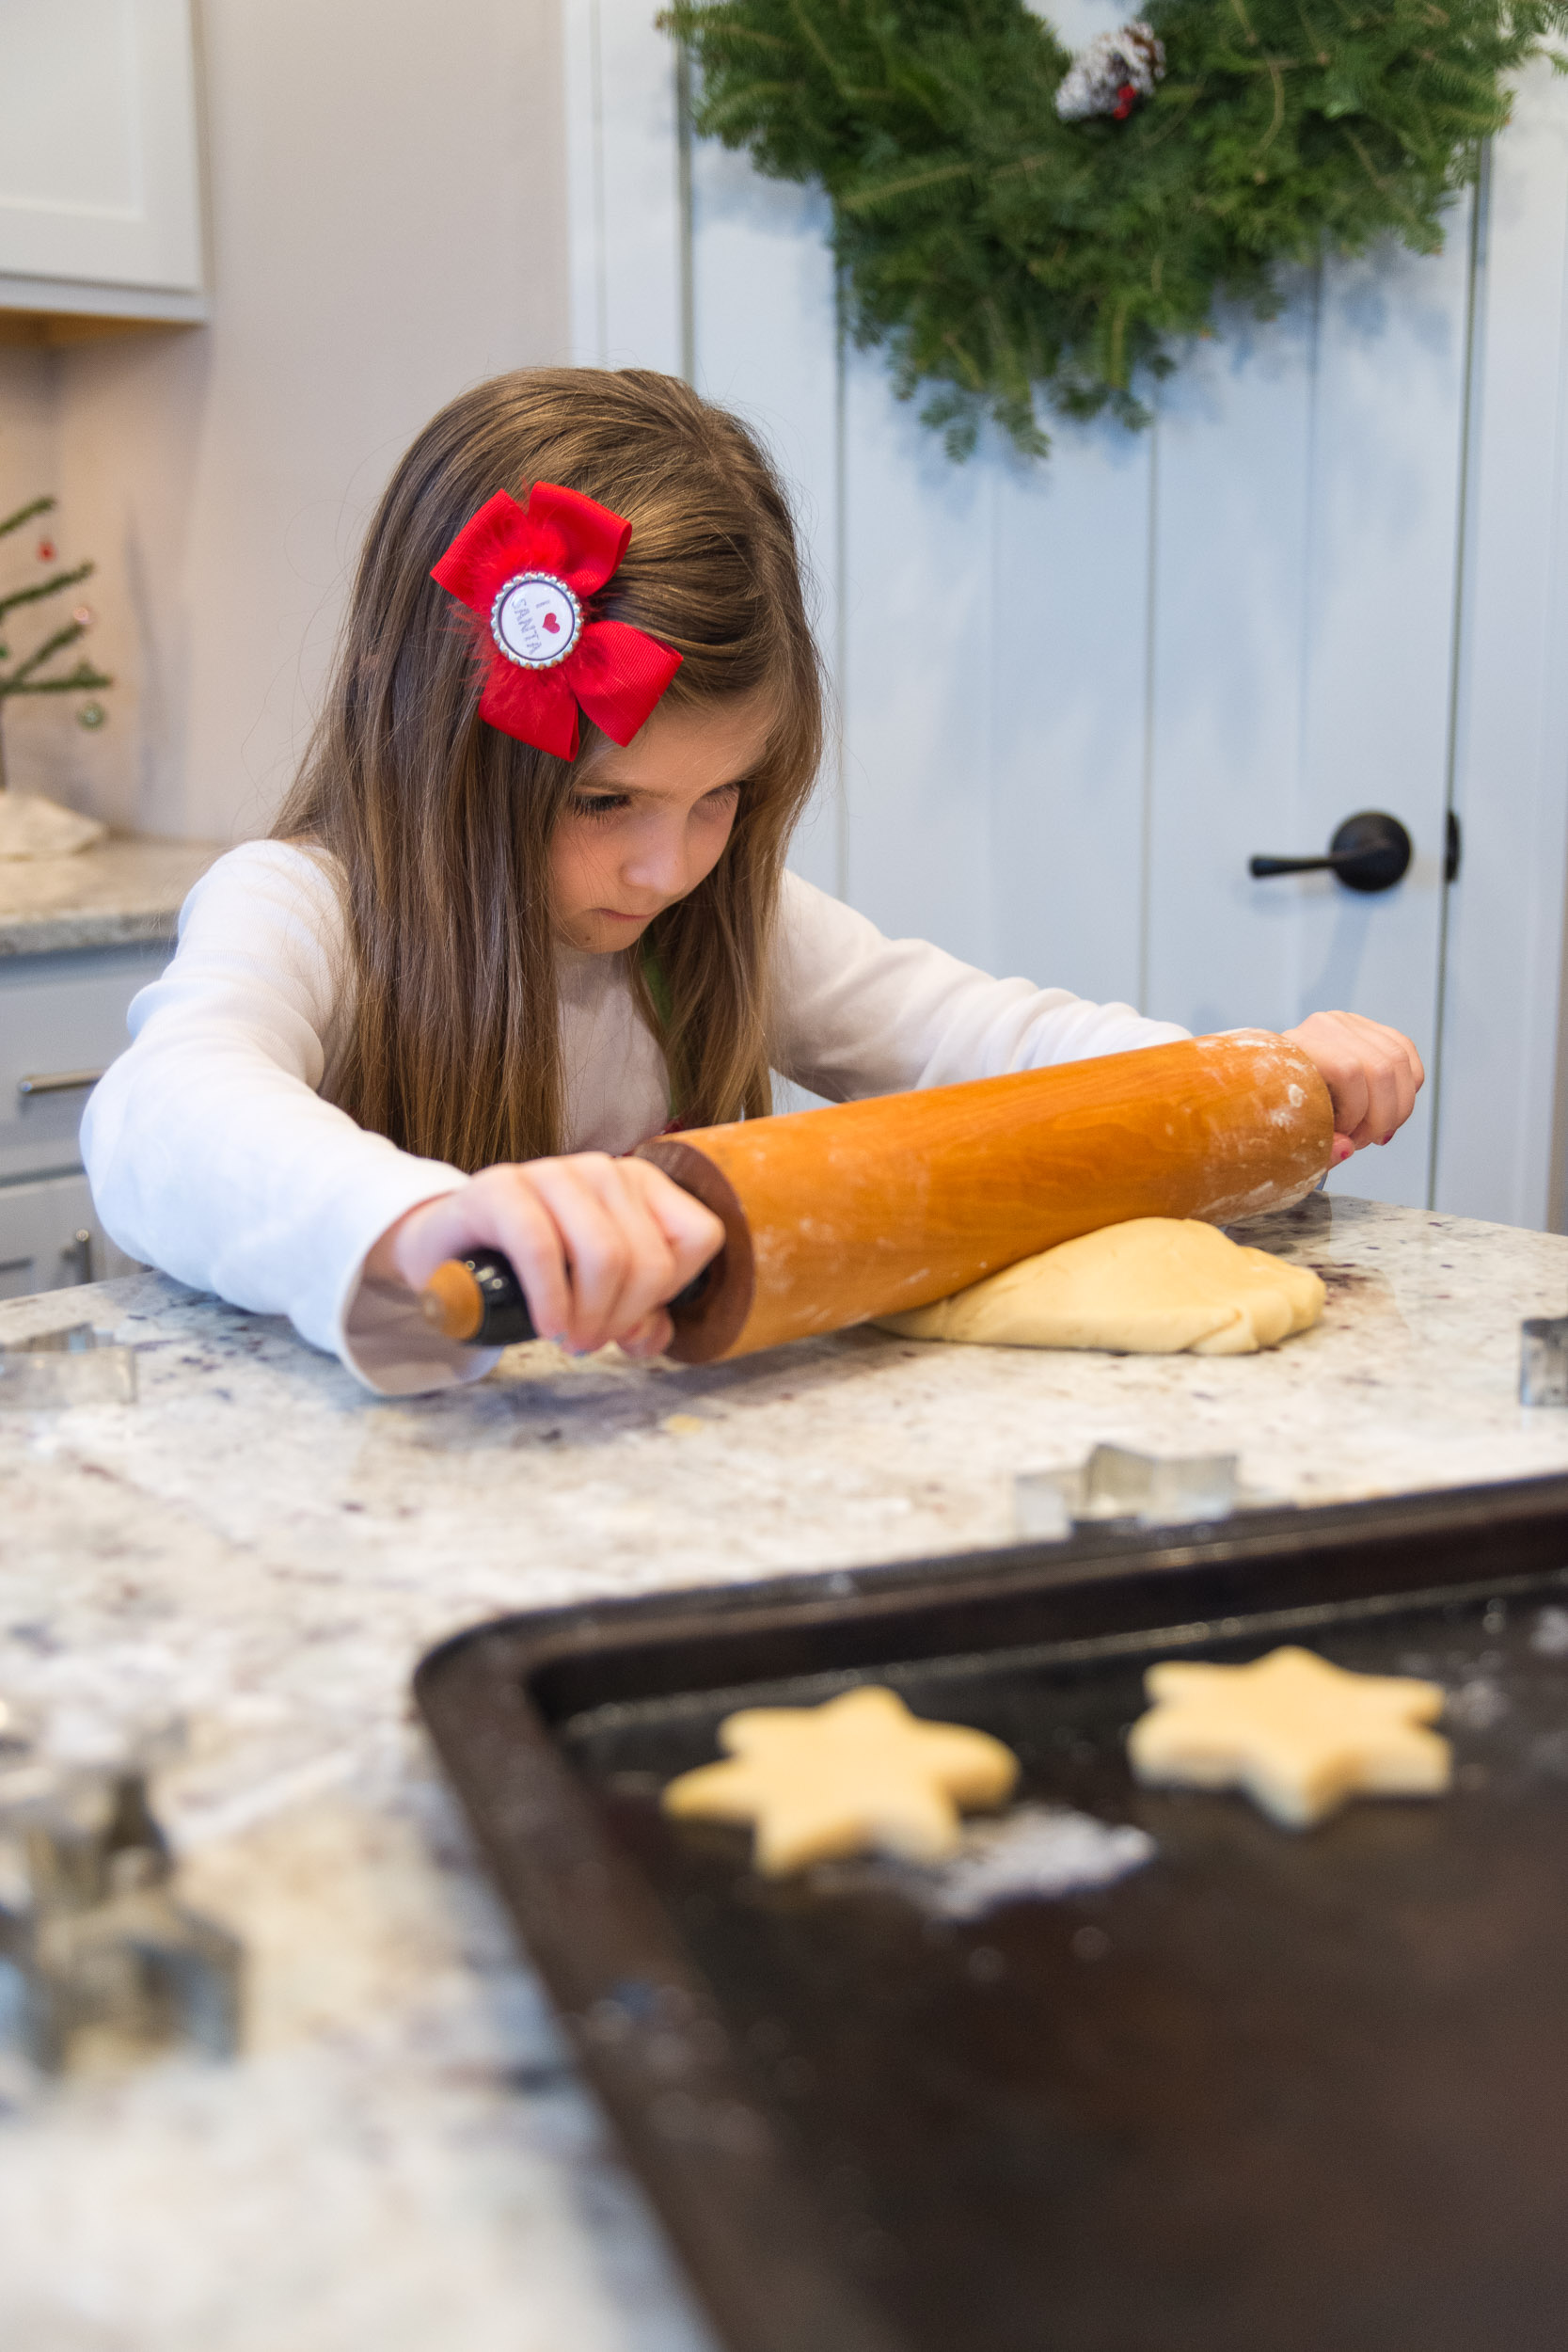 Kids kitchen baking holiday photo portrait | Photo by BillyBengtson.com